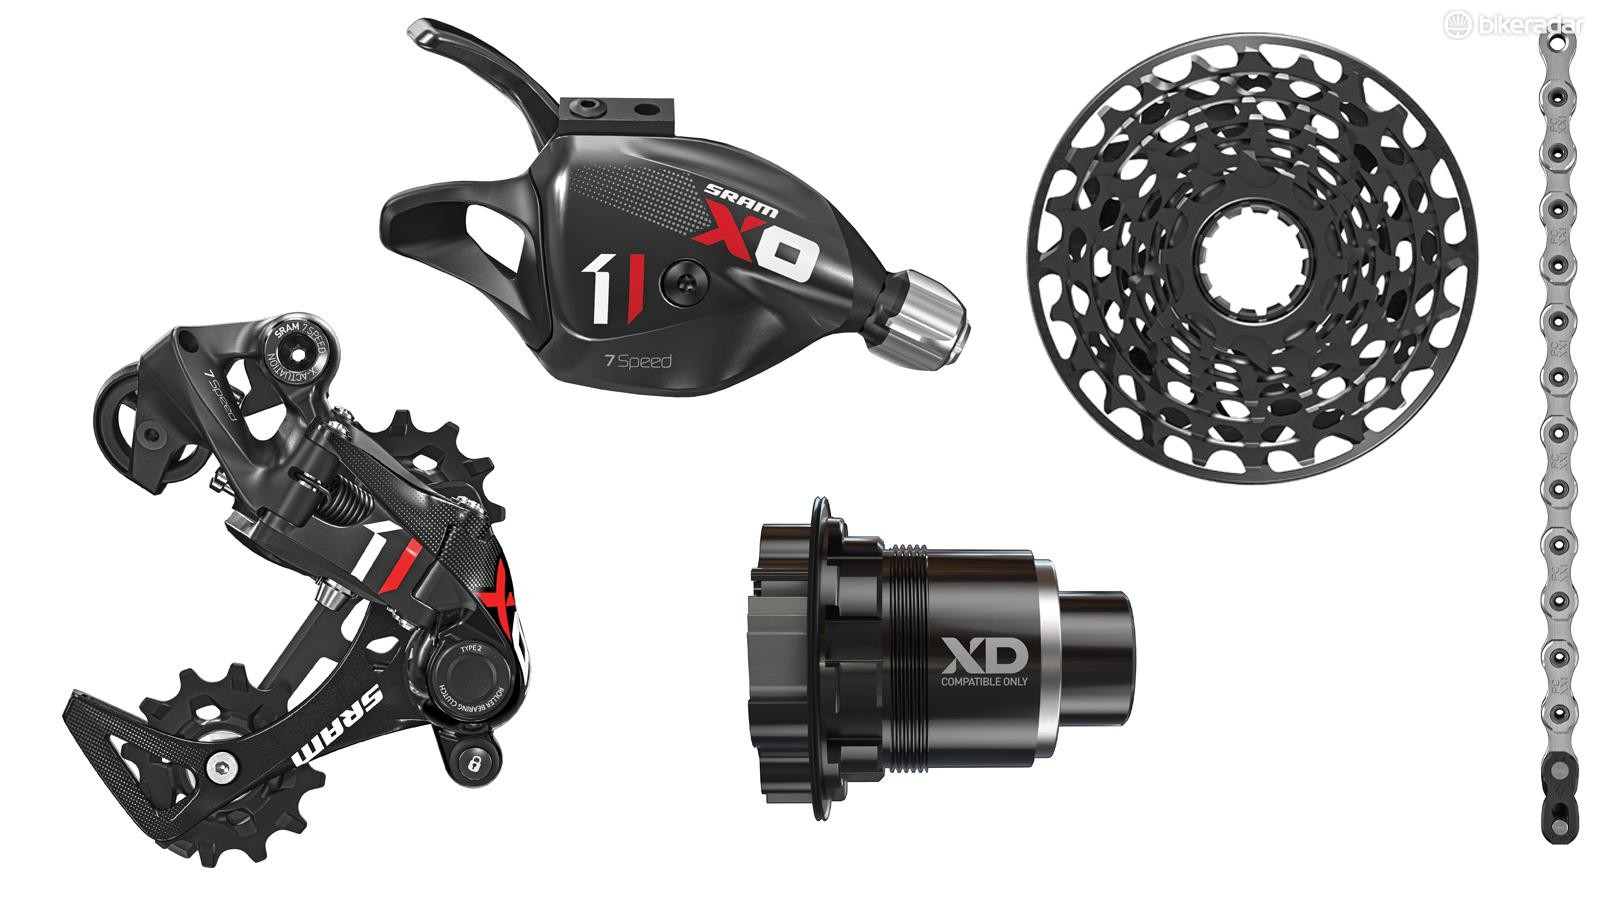 SRAM's latest discipline-specific groupset, X01-DH, uses many of SRAM's single-ring technologies but with a far smaller gear range for downhill racing